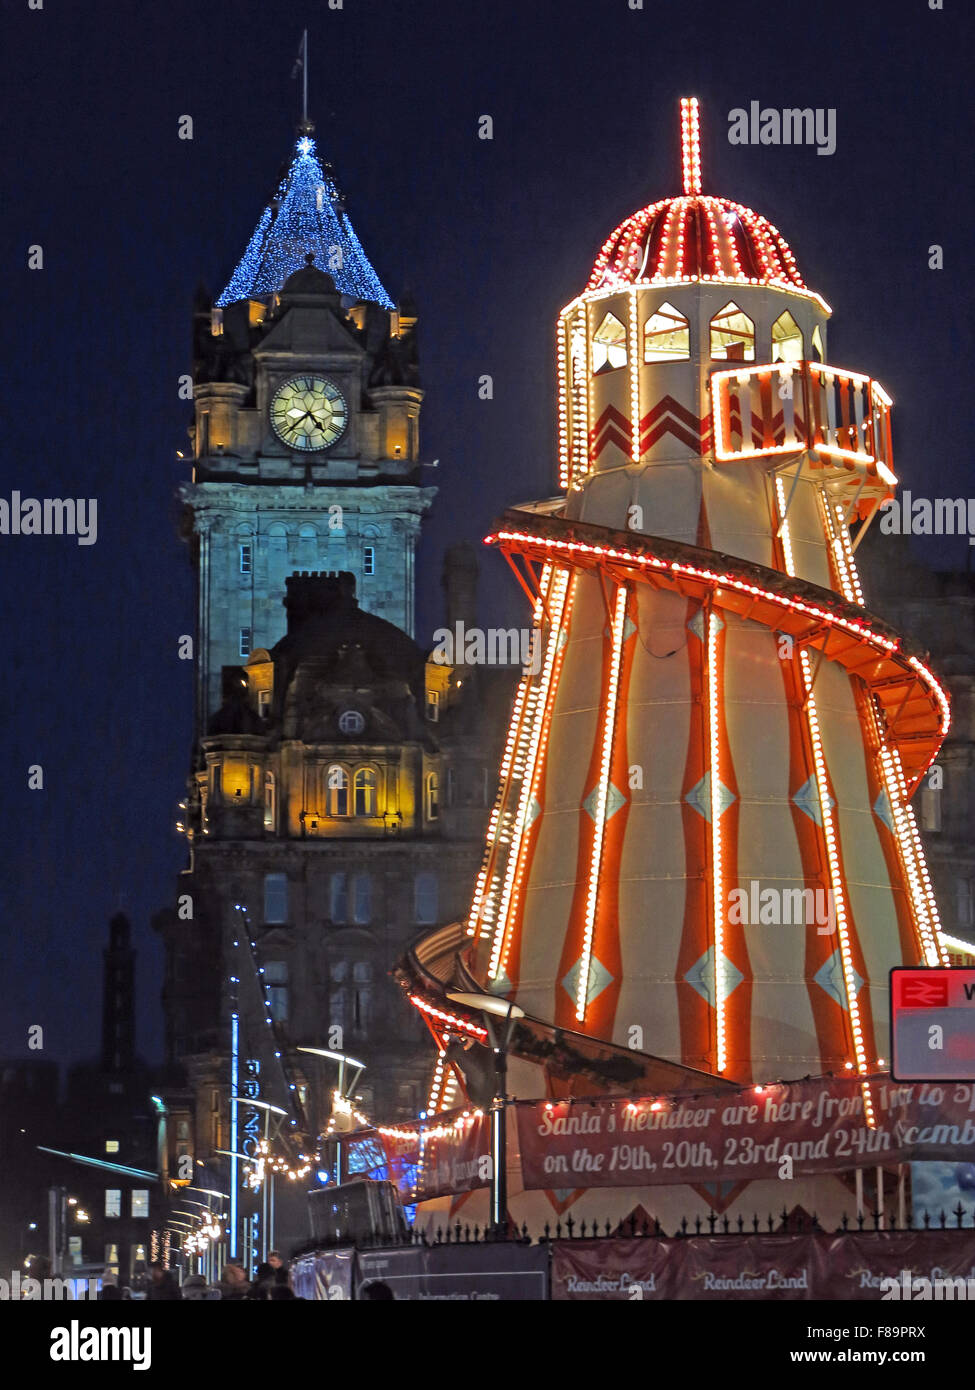 GB,Great,Britain,Night,time,nighttime,dusk,slide,hotel,Balmoral,Hotel,Clock,street,Mall,Princes Mall,Shopping,Xmas,Festive,Hogmanay,tourist,travel,lit,low,light,Helter,Skelter,winter,fun,entertainment,Scottish,Scotland,UK,Lothian,Lothians,Midlothian,New Year,Low light,Helter Skelter,GoTonySmith,Buy Pictures of,Buy Images Of